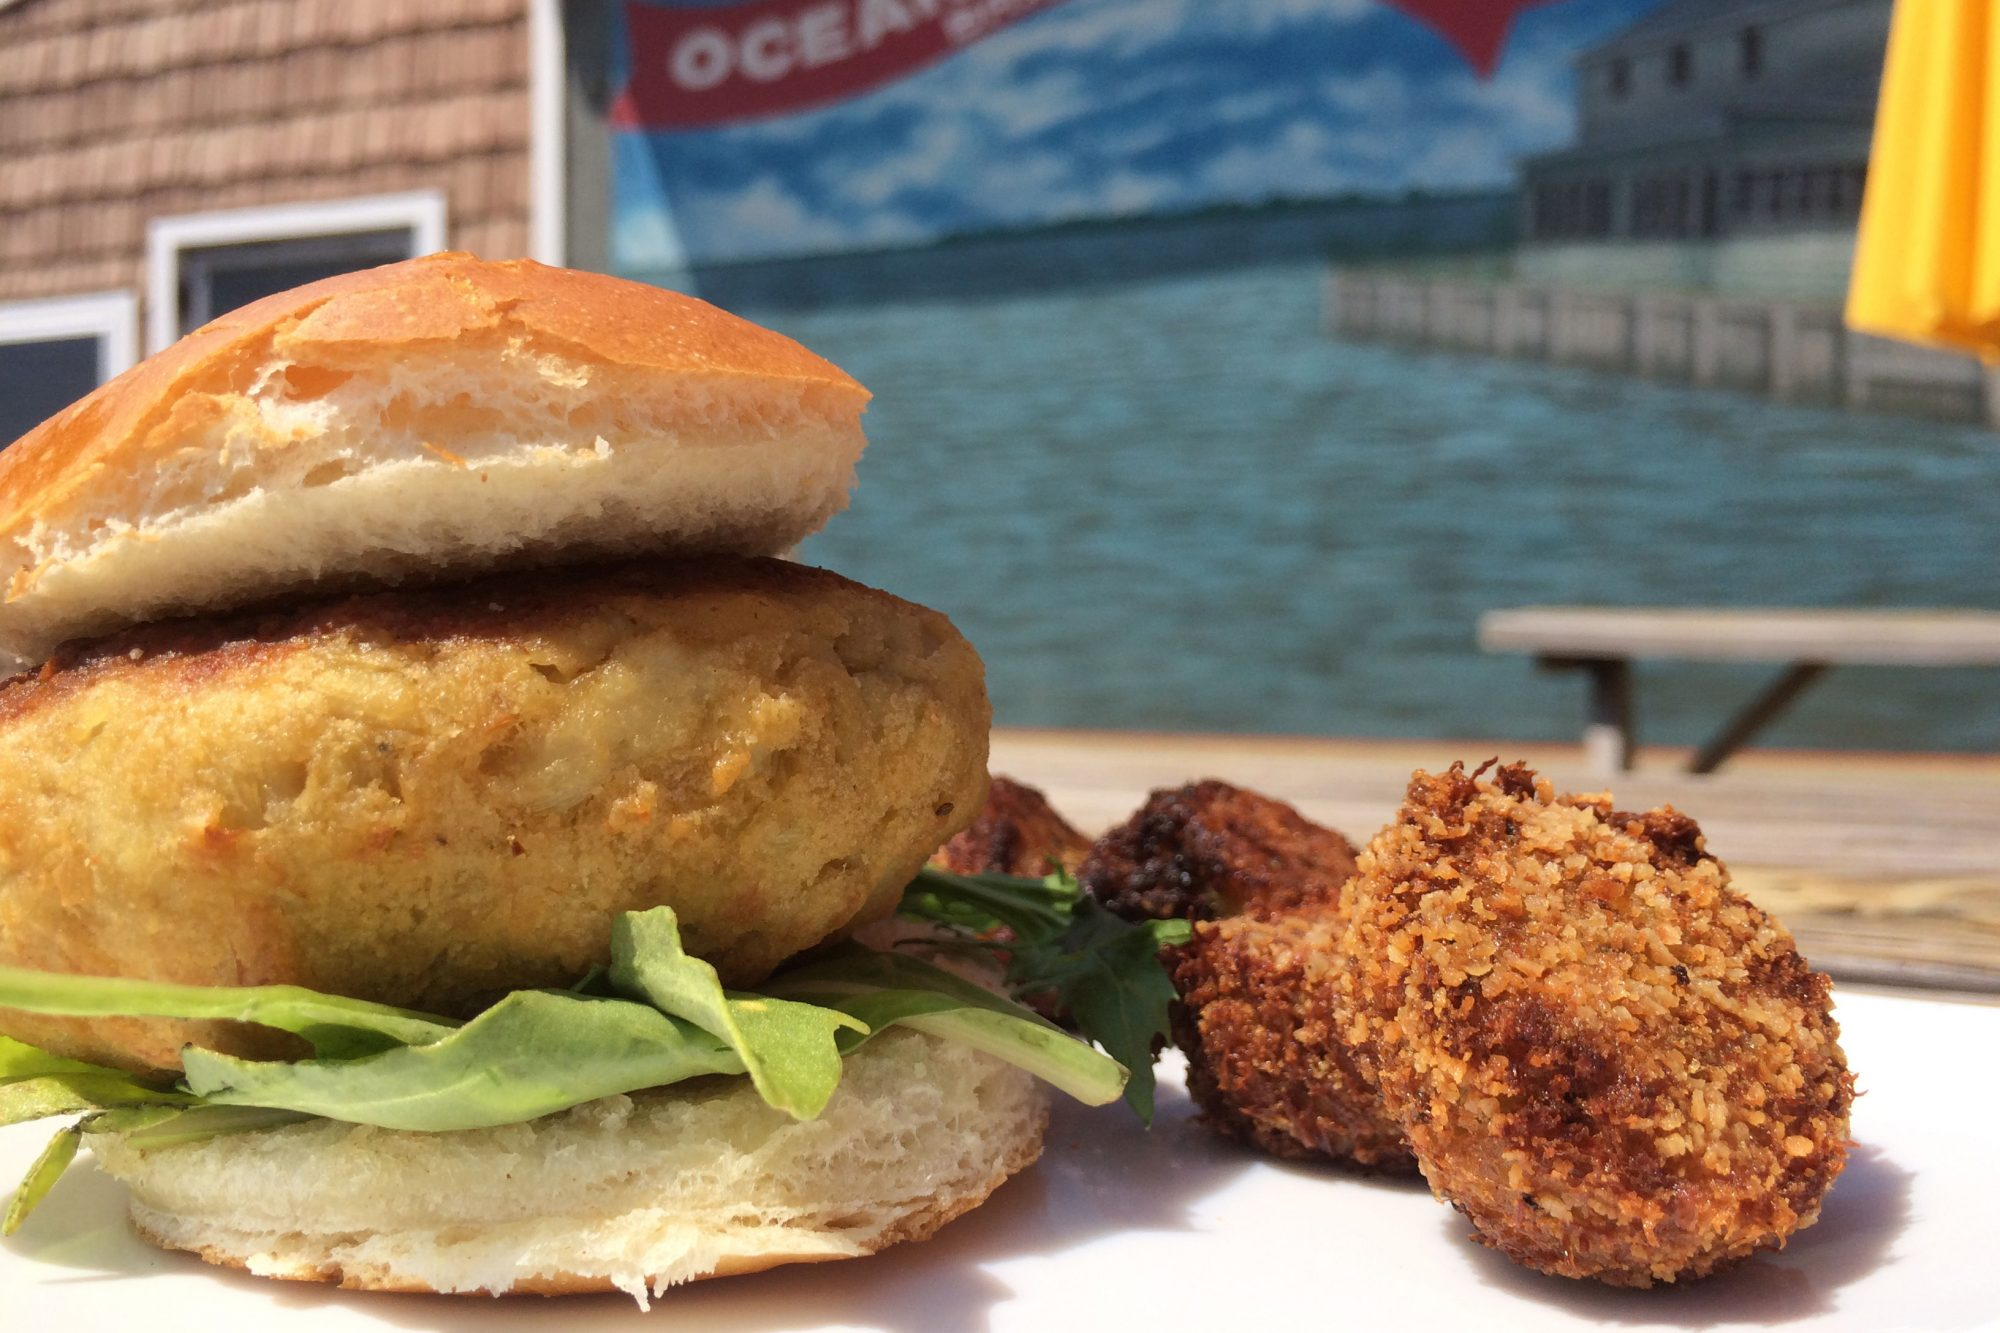 What started as a third-generation–run crab processing plant has grown into a trendy community gathering spot complete with an open-air crab-and-beer garden (a.k.a. heaven on earth). The crab cakes are among the kings of the menu—light on filling...